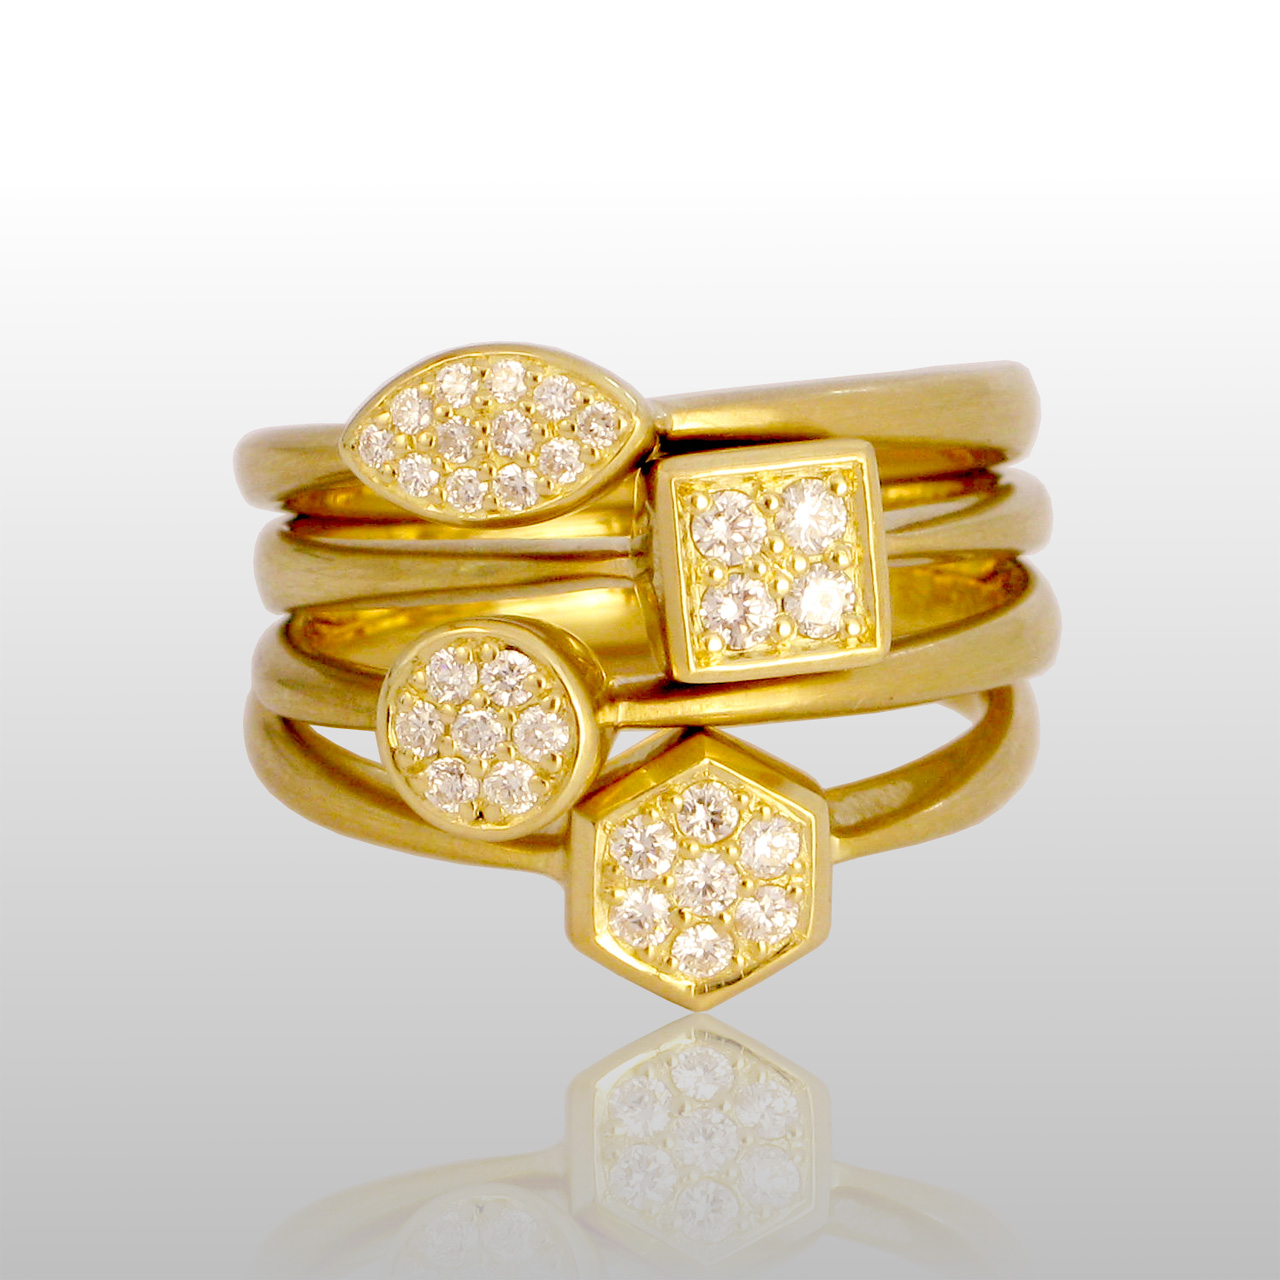 5 gold rings with various shapes and small diamonds in the center of each